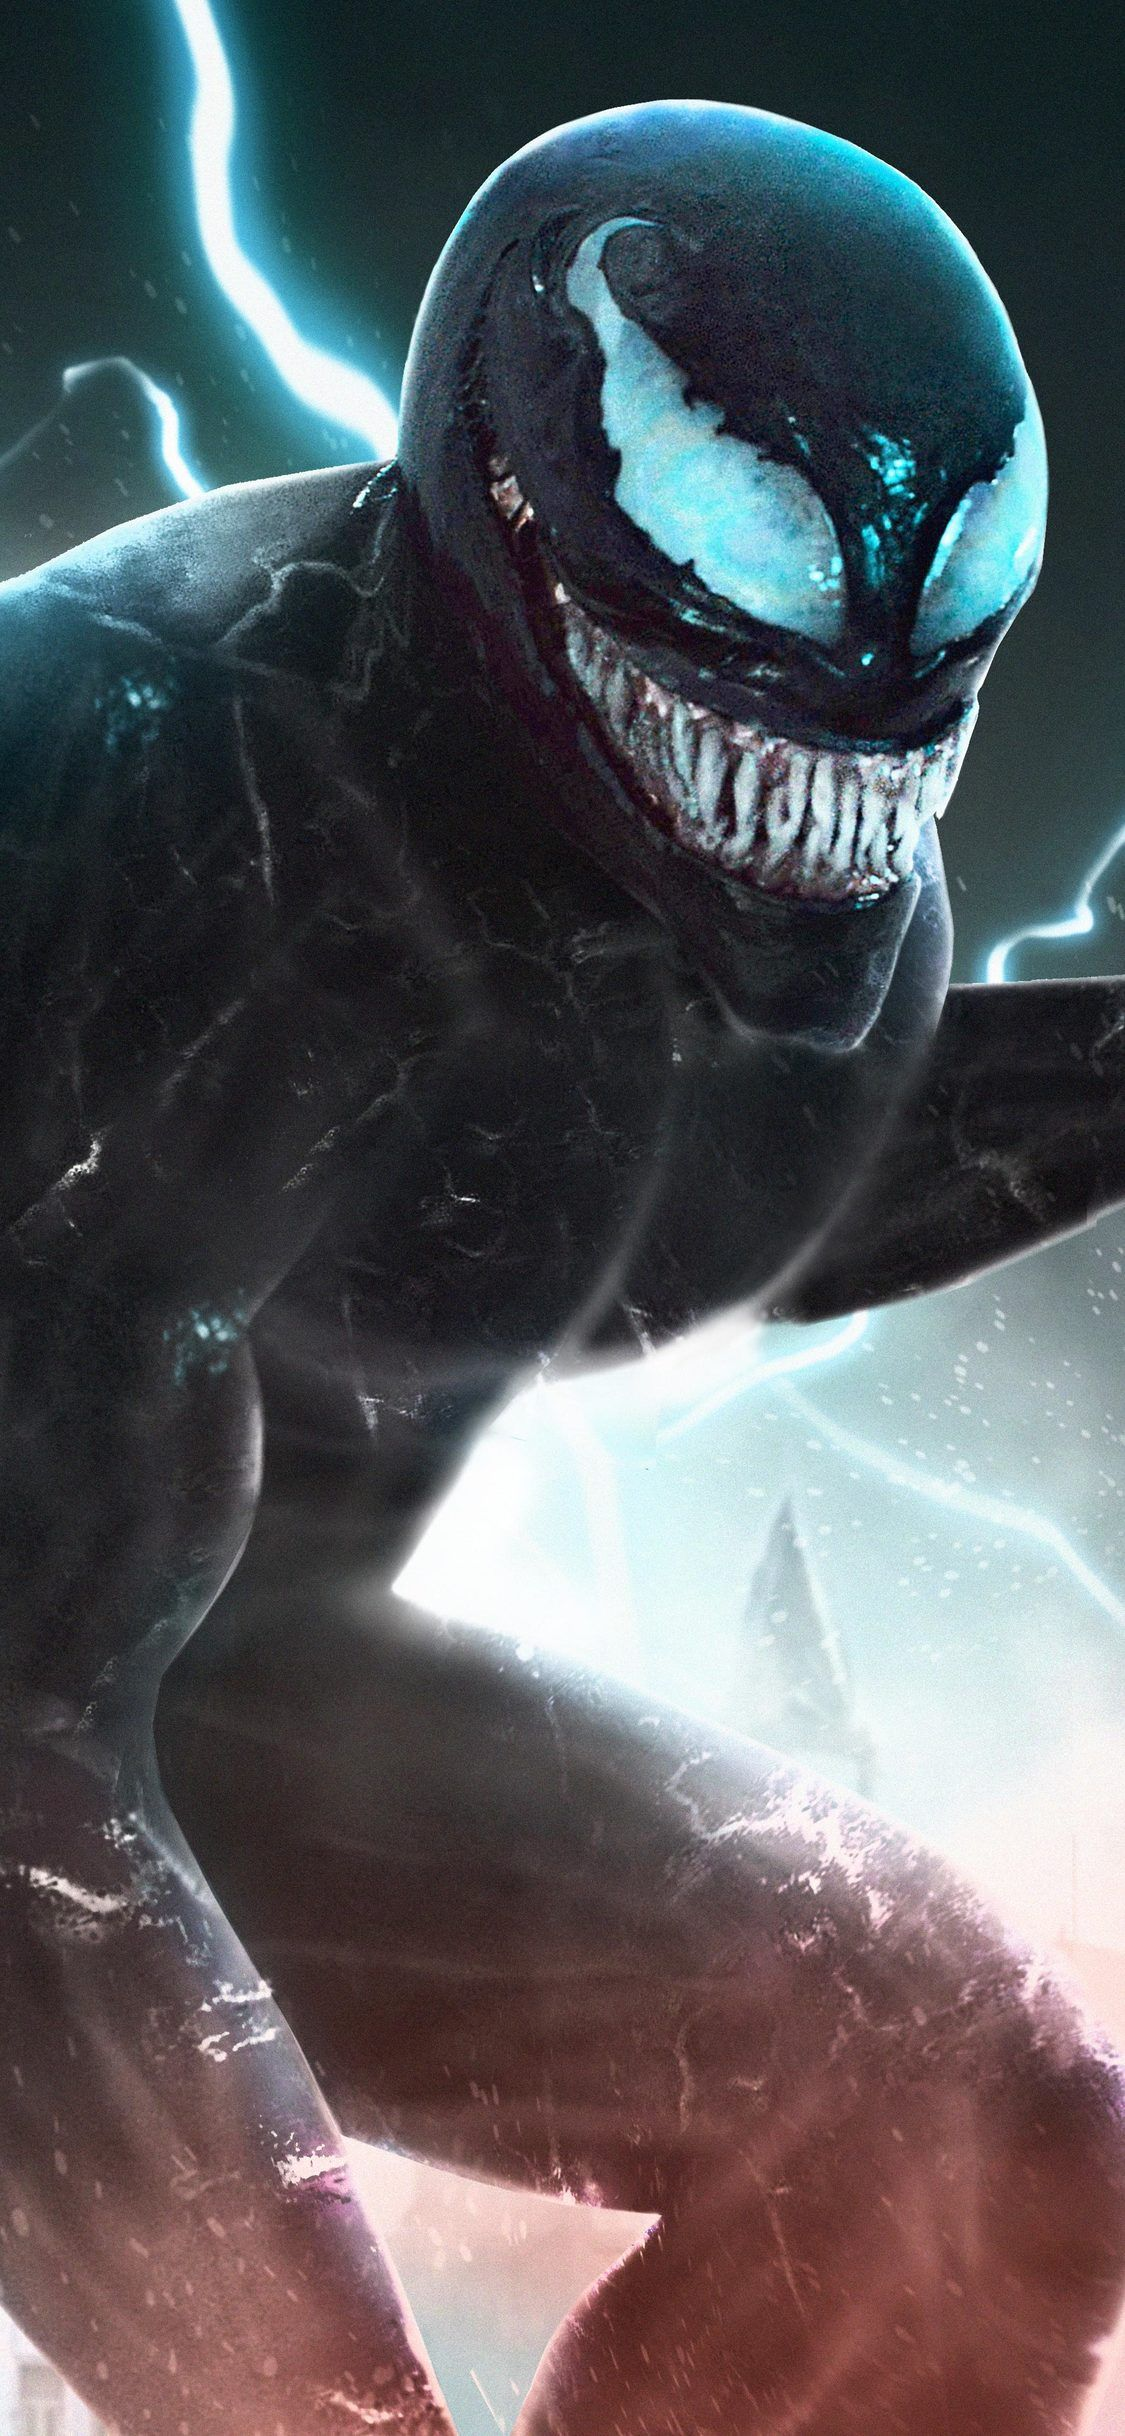 Venom Movie Artwork Iphone X Venom Venom Movie Venom Venom 2018